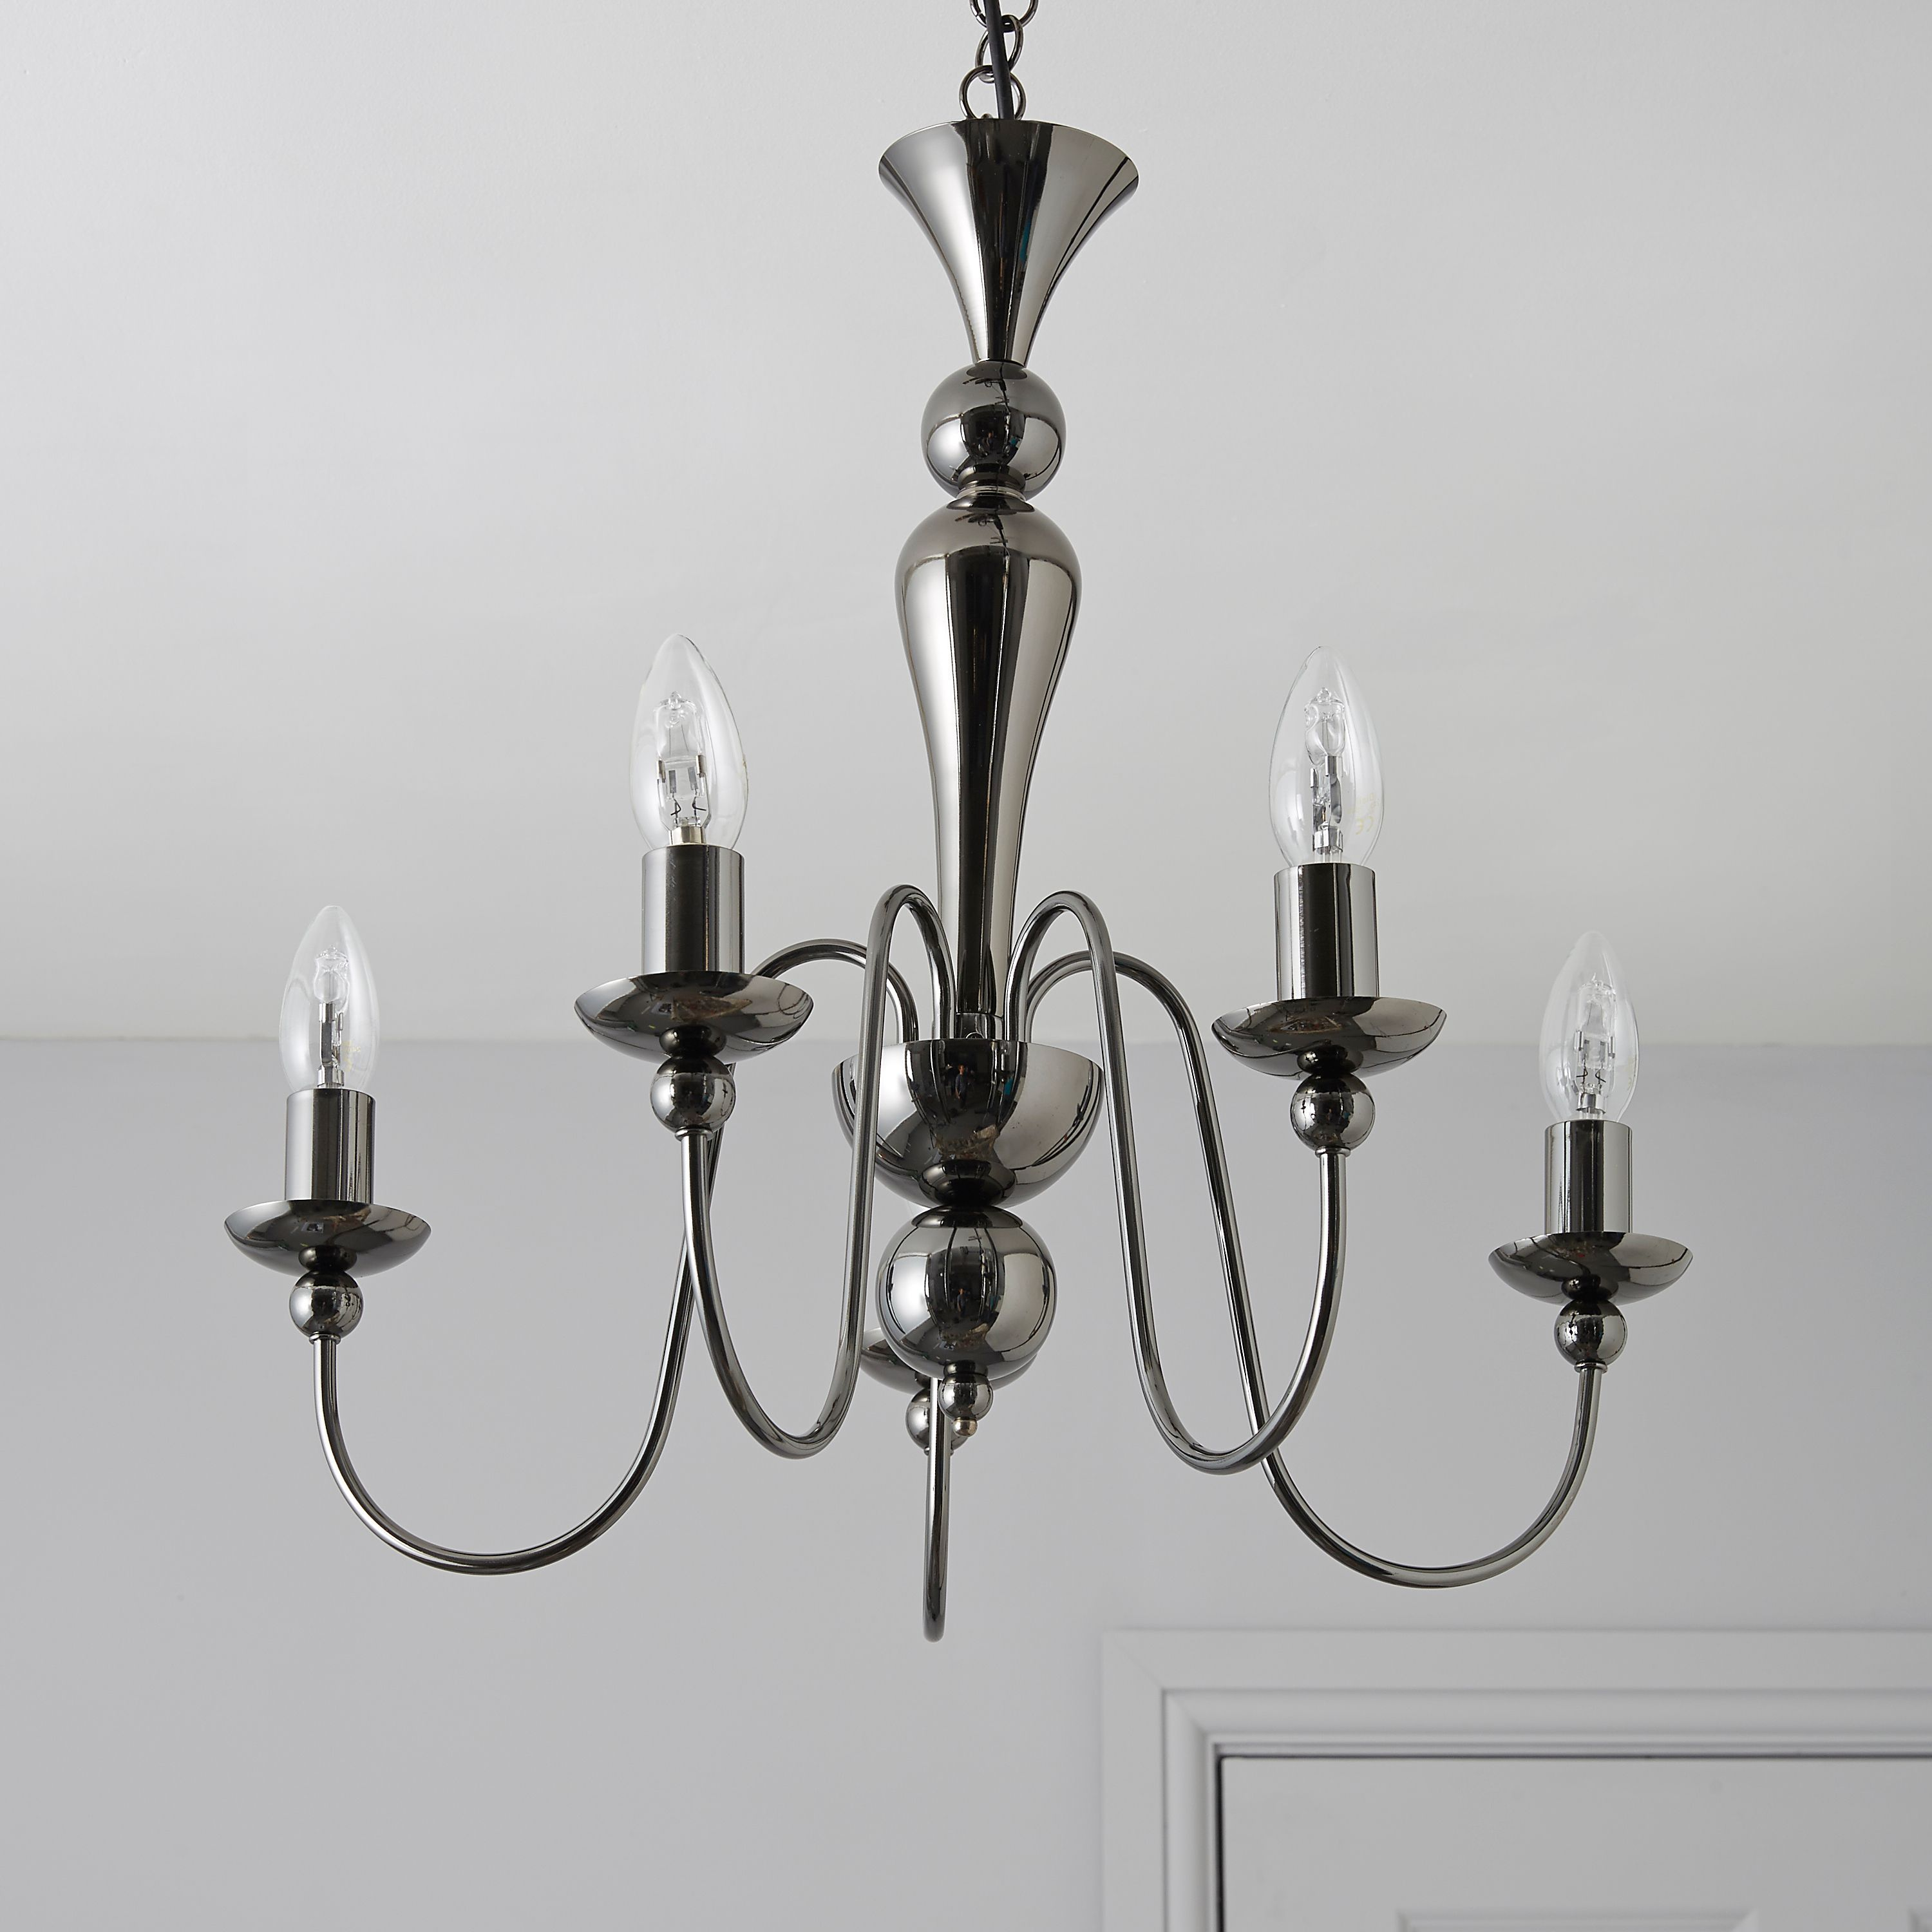 Megan black nickel effect 5 lamp pendant ceiling light for B q bathroom lights